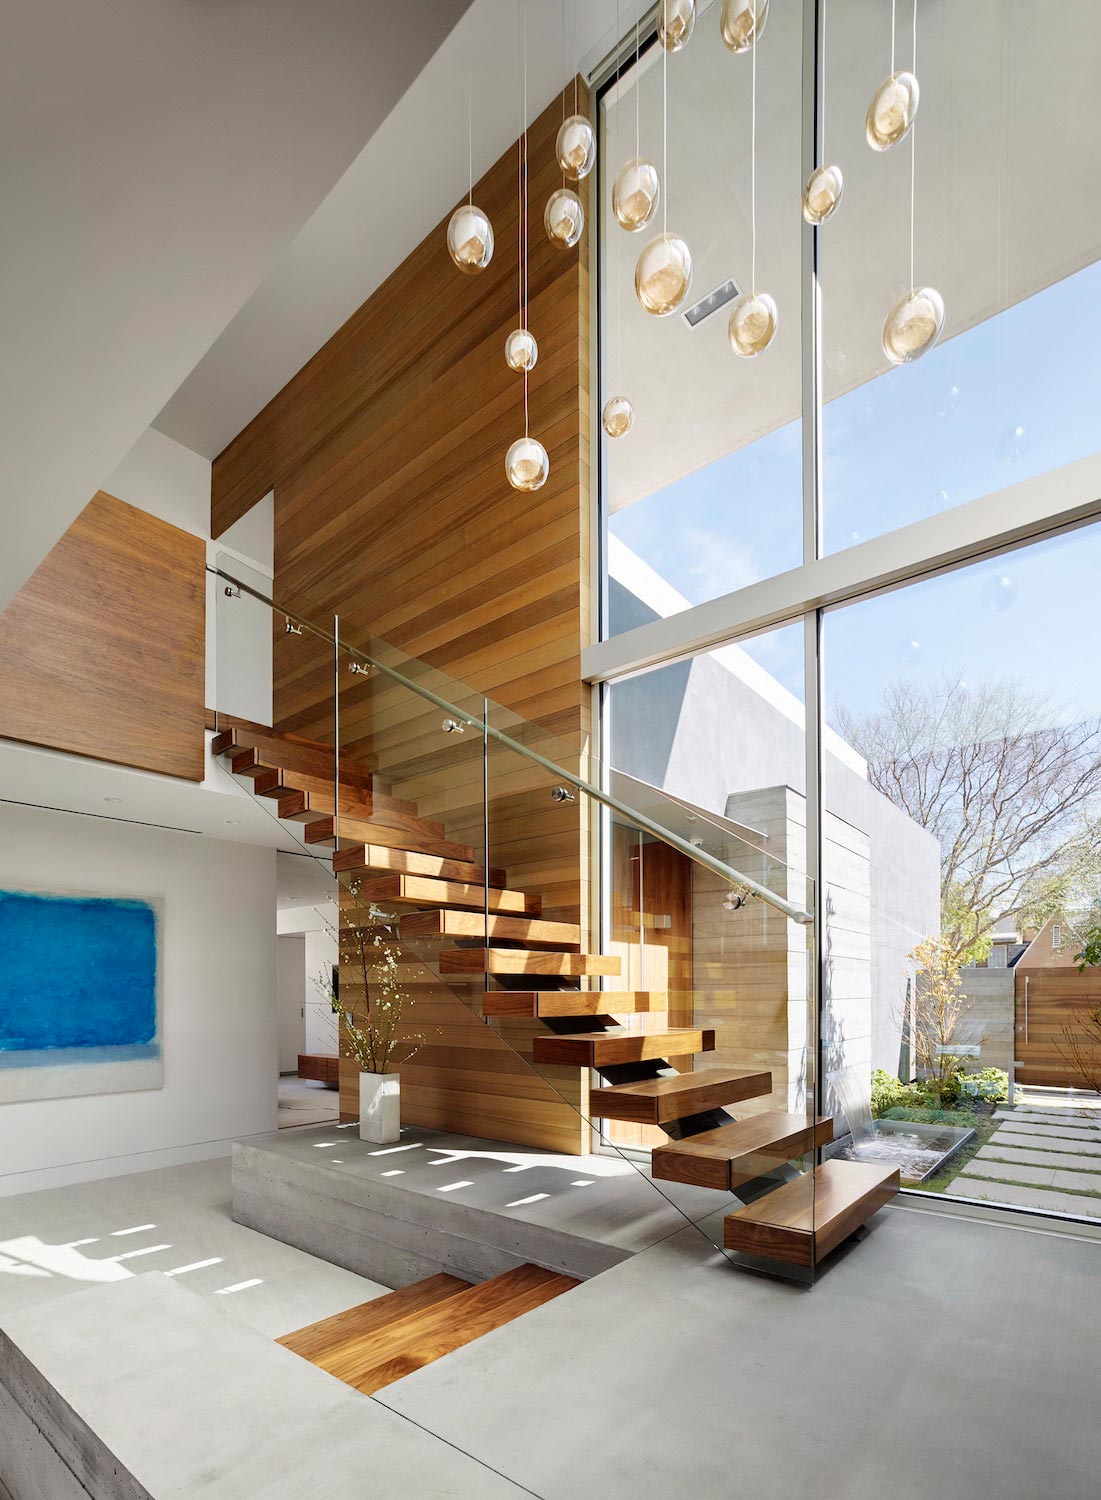 project-respects-neighborhood-mainly-consisting-spanish-styled-homes  S Architecture Home Designs on 1940s kitchen designs, 1940s bathroom, 1940s home lighting, 1940s home floor plans,